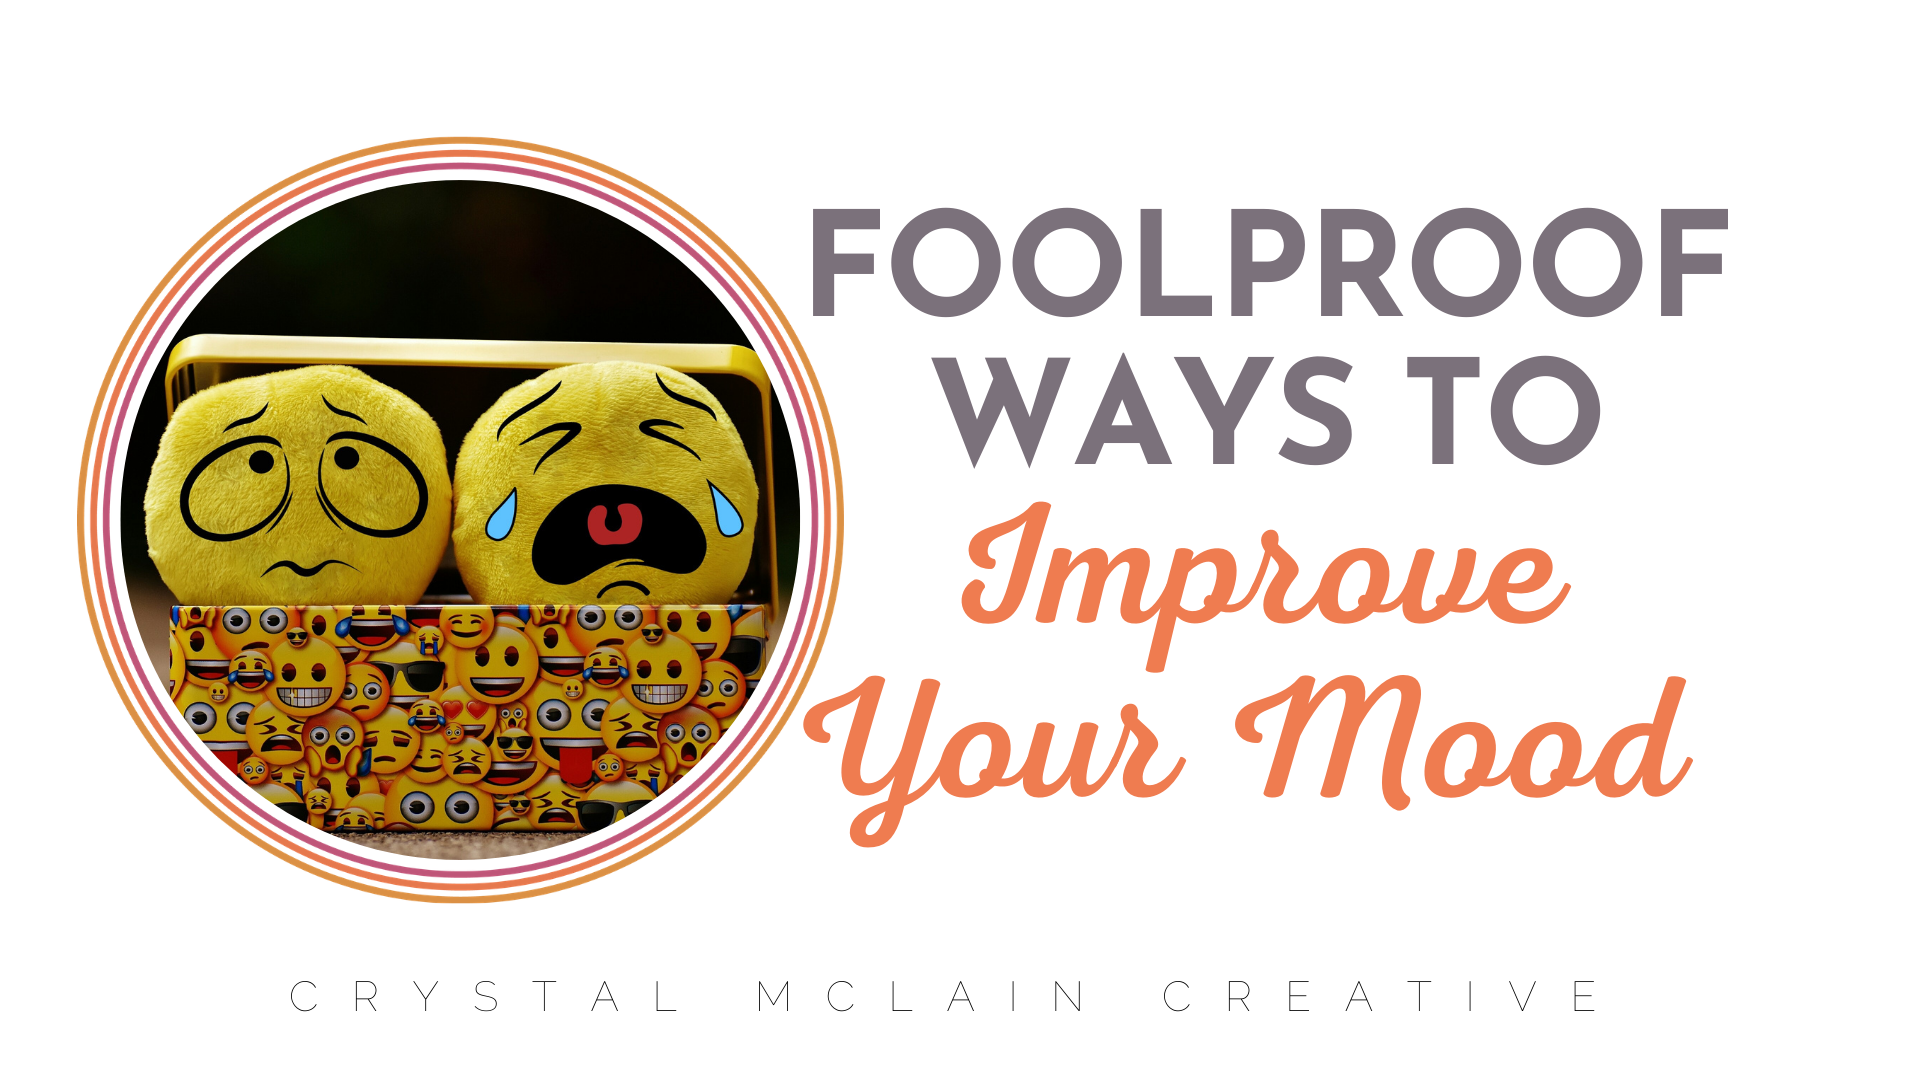 CRYSTAL MCLAIN CREATIVE FOOL PROOF WAYS TO IMPROVE YOUR MOOD FOOD EXERCISE REST SELF CARE EASY